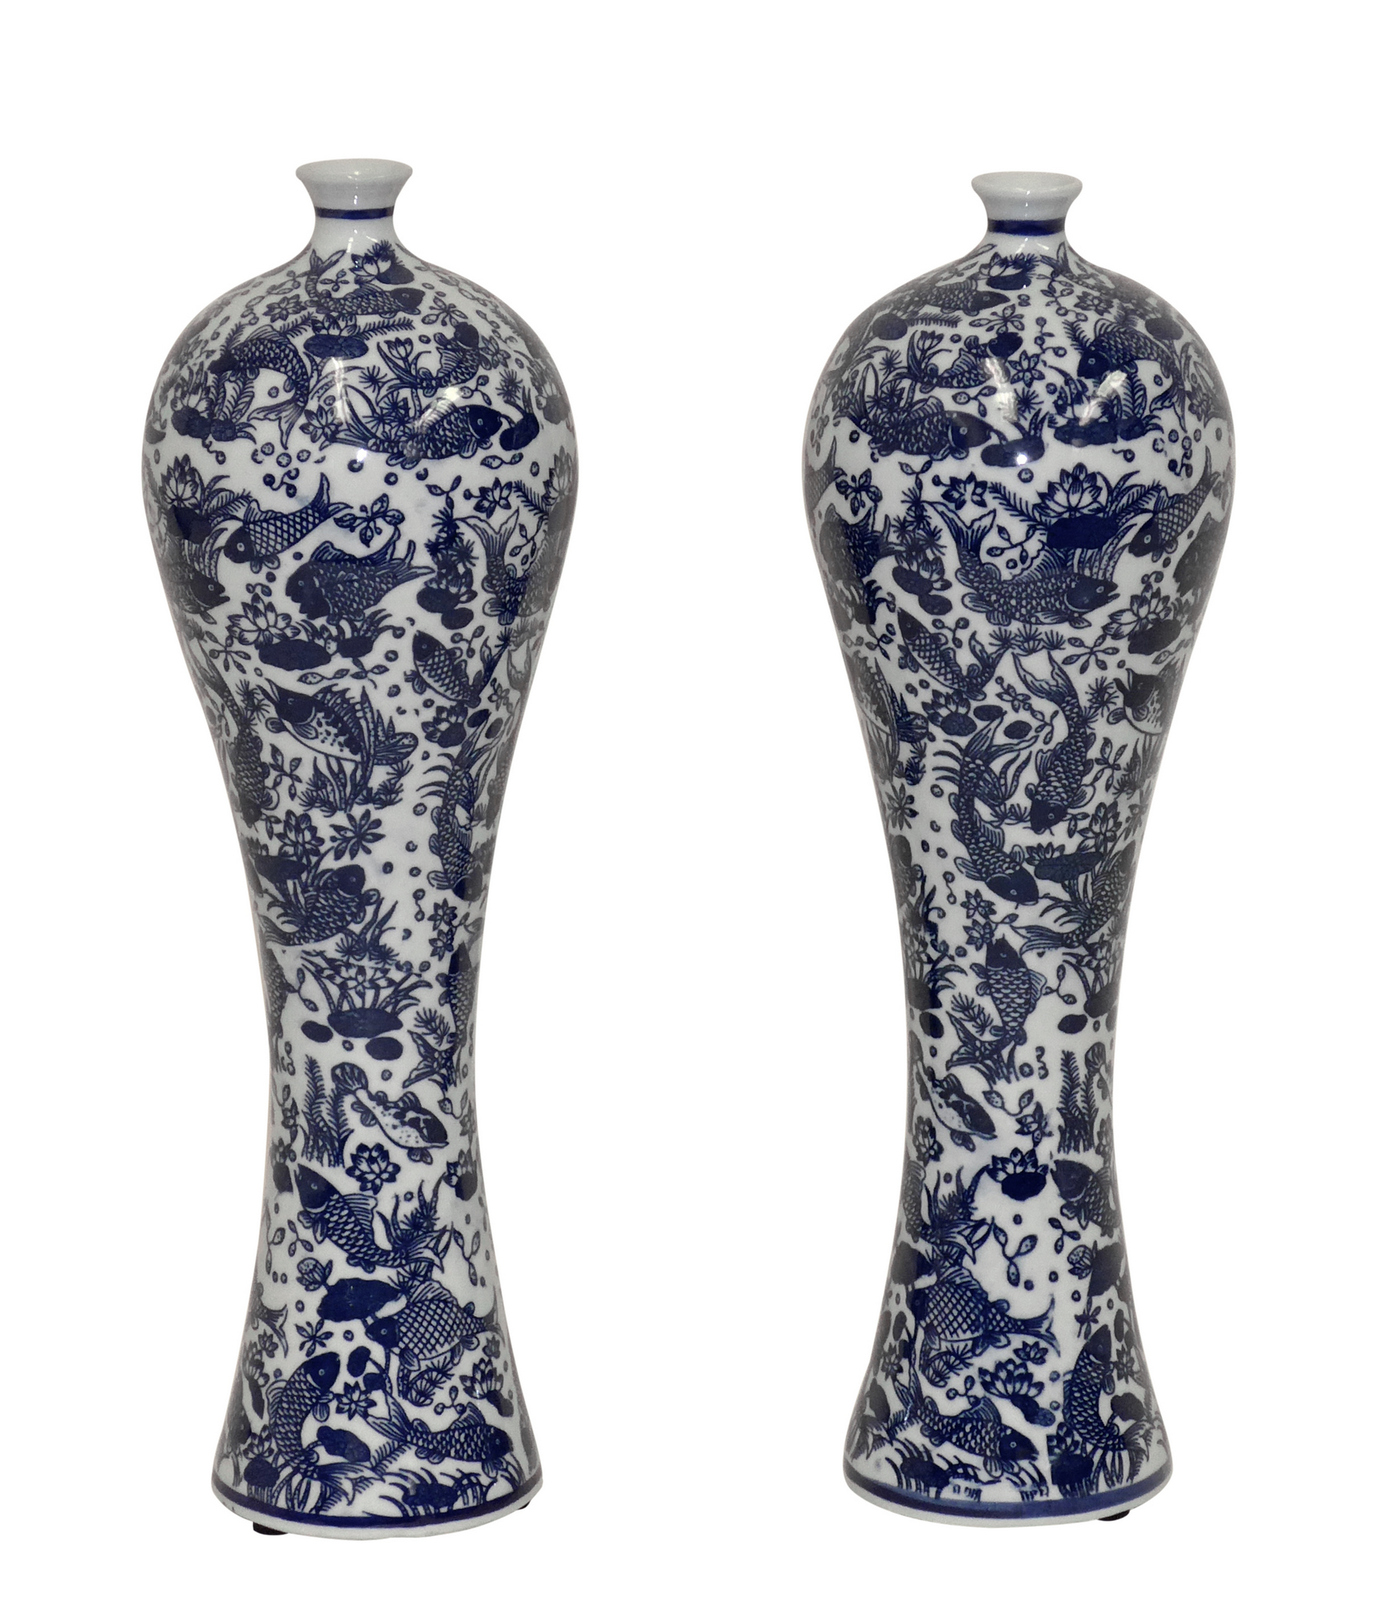 Pair of Blue & White Mei Ping Porcelain Vases,13'' tall.